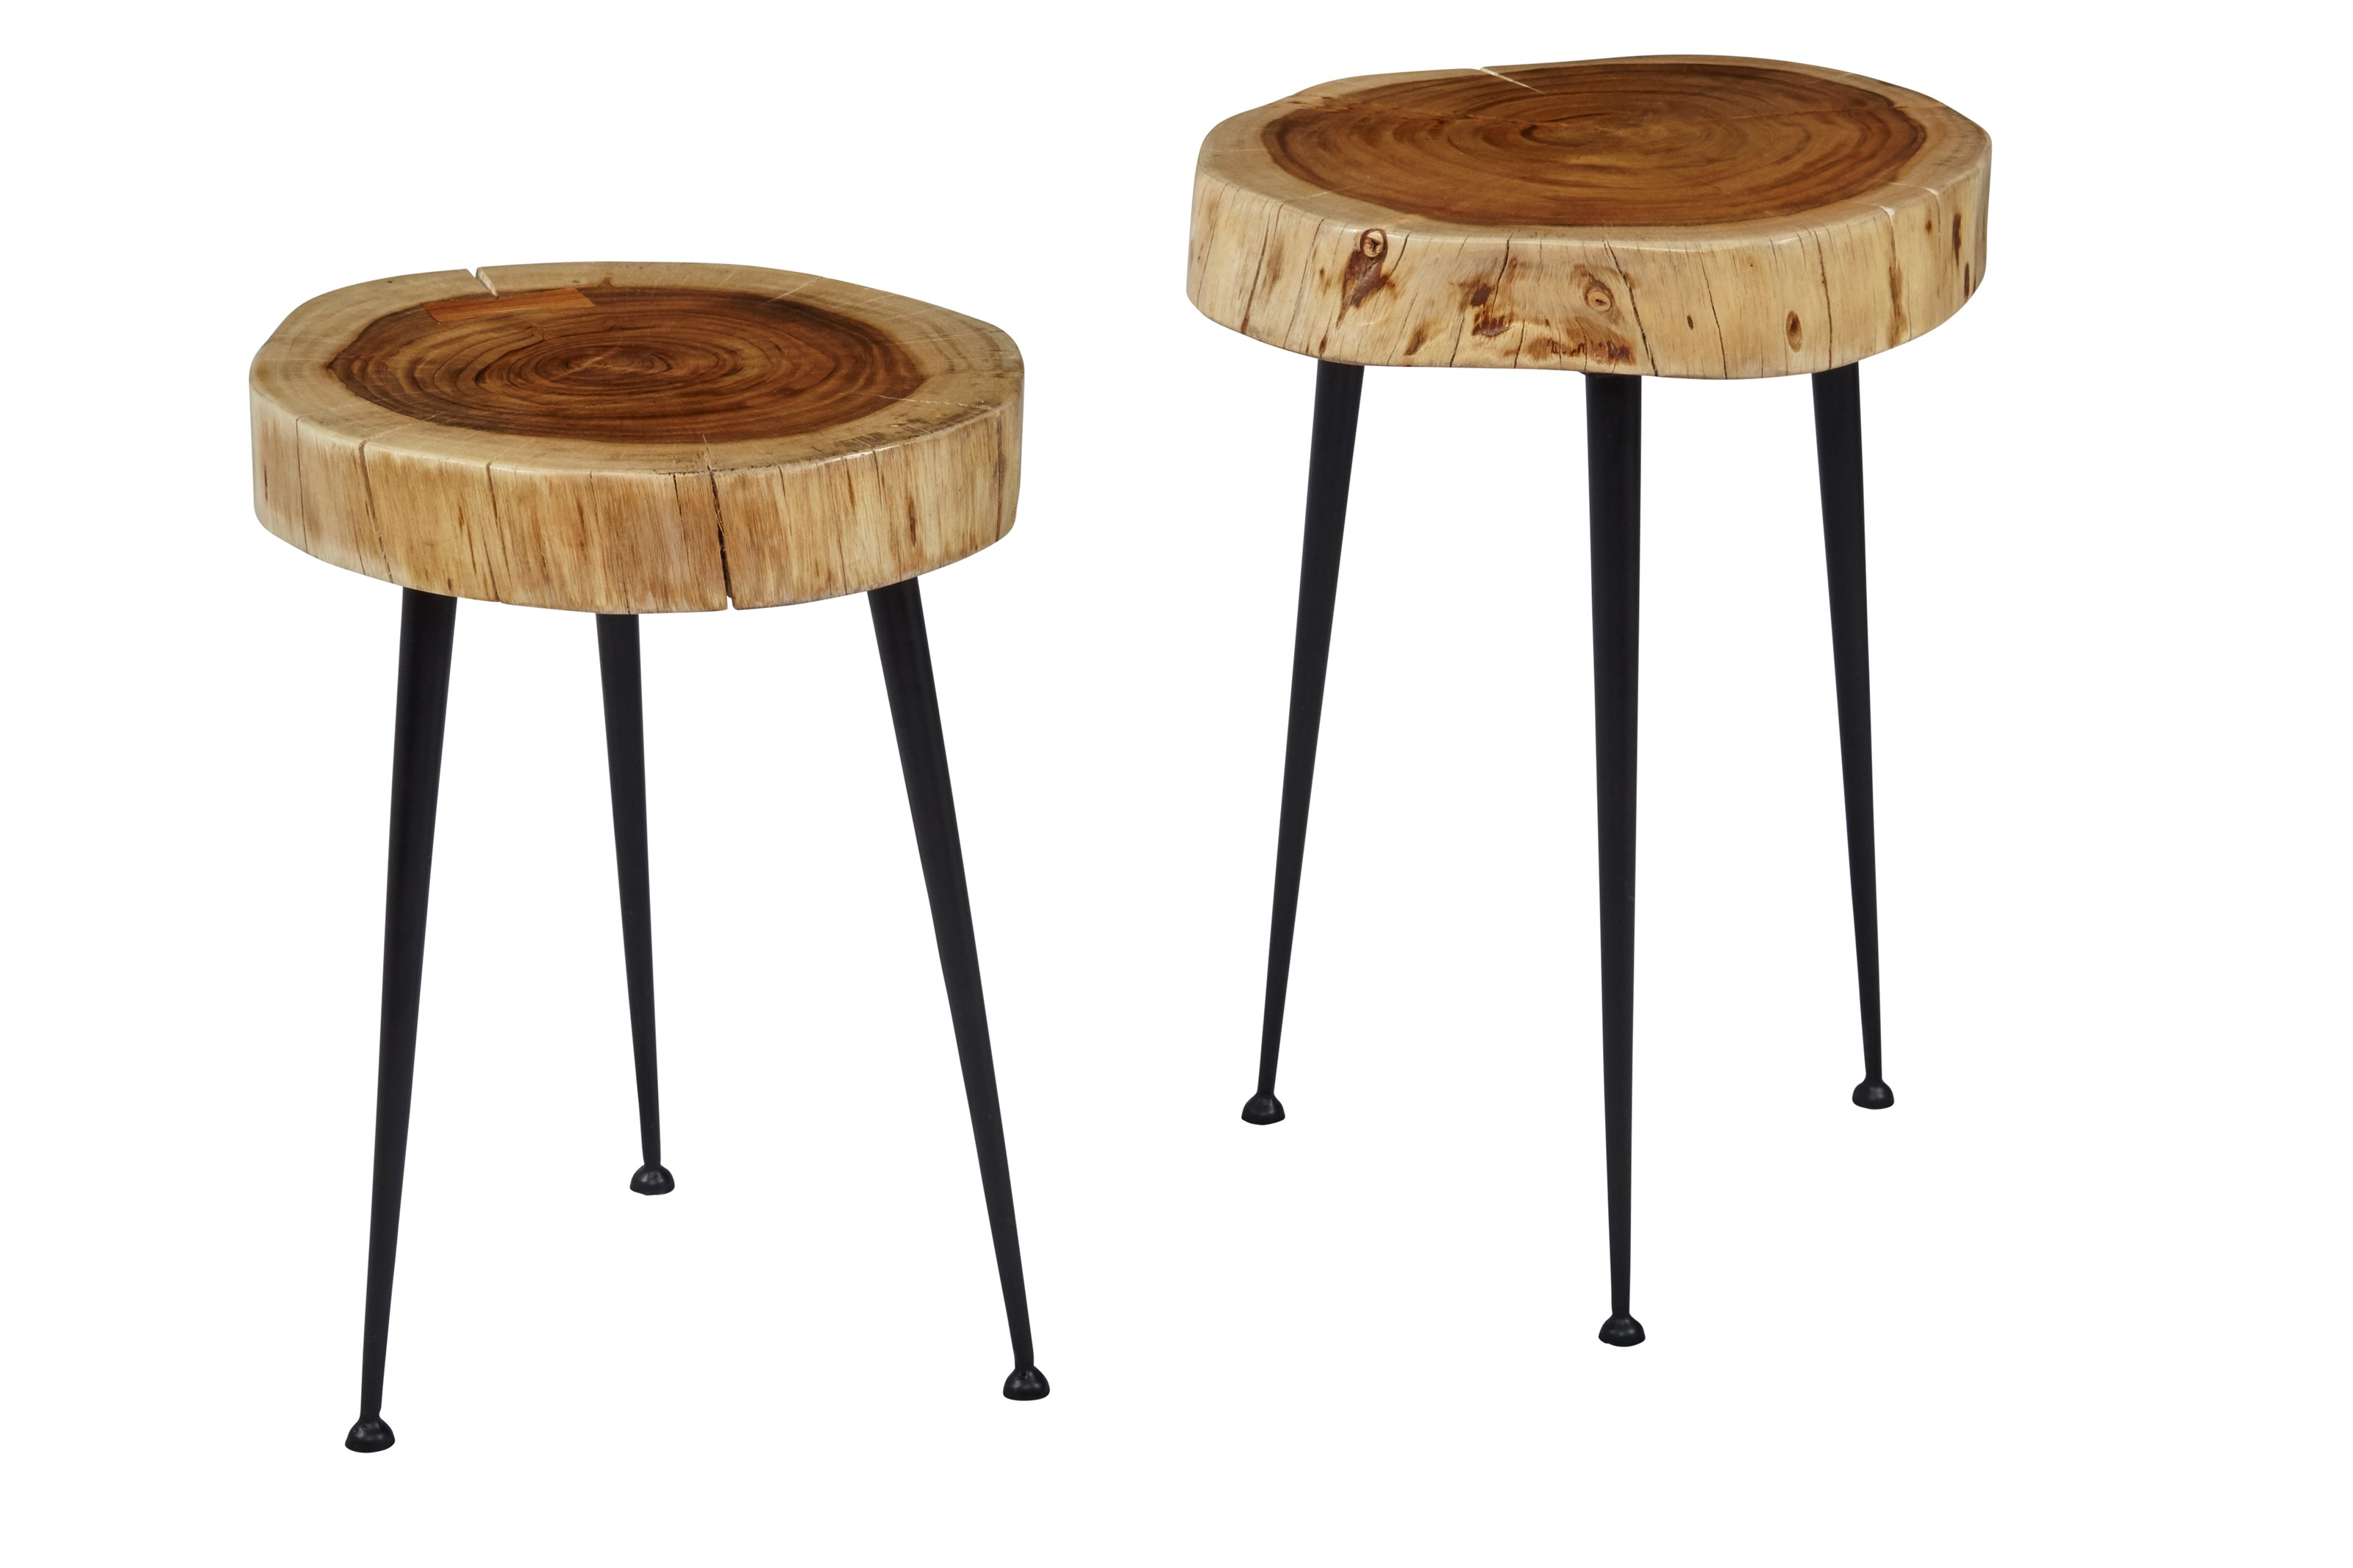 Set of 2 Accent Tables